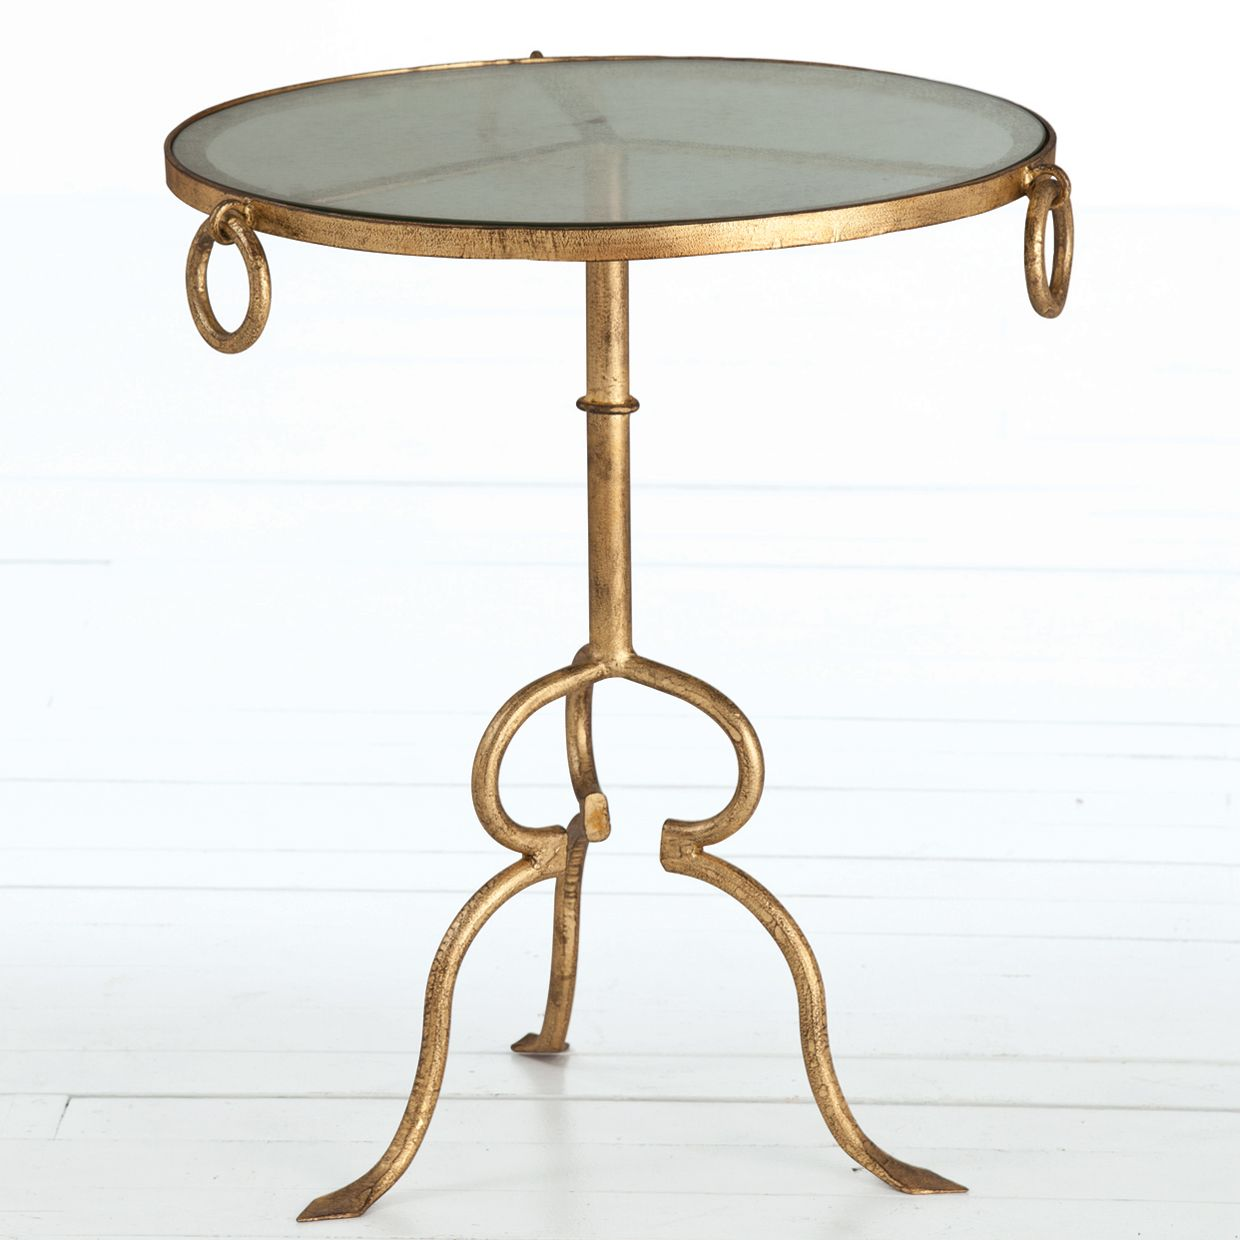 Arteriors Raul Gold Side Table Zinc Door Gold Side Table Table Gold Leaf Furniture